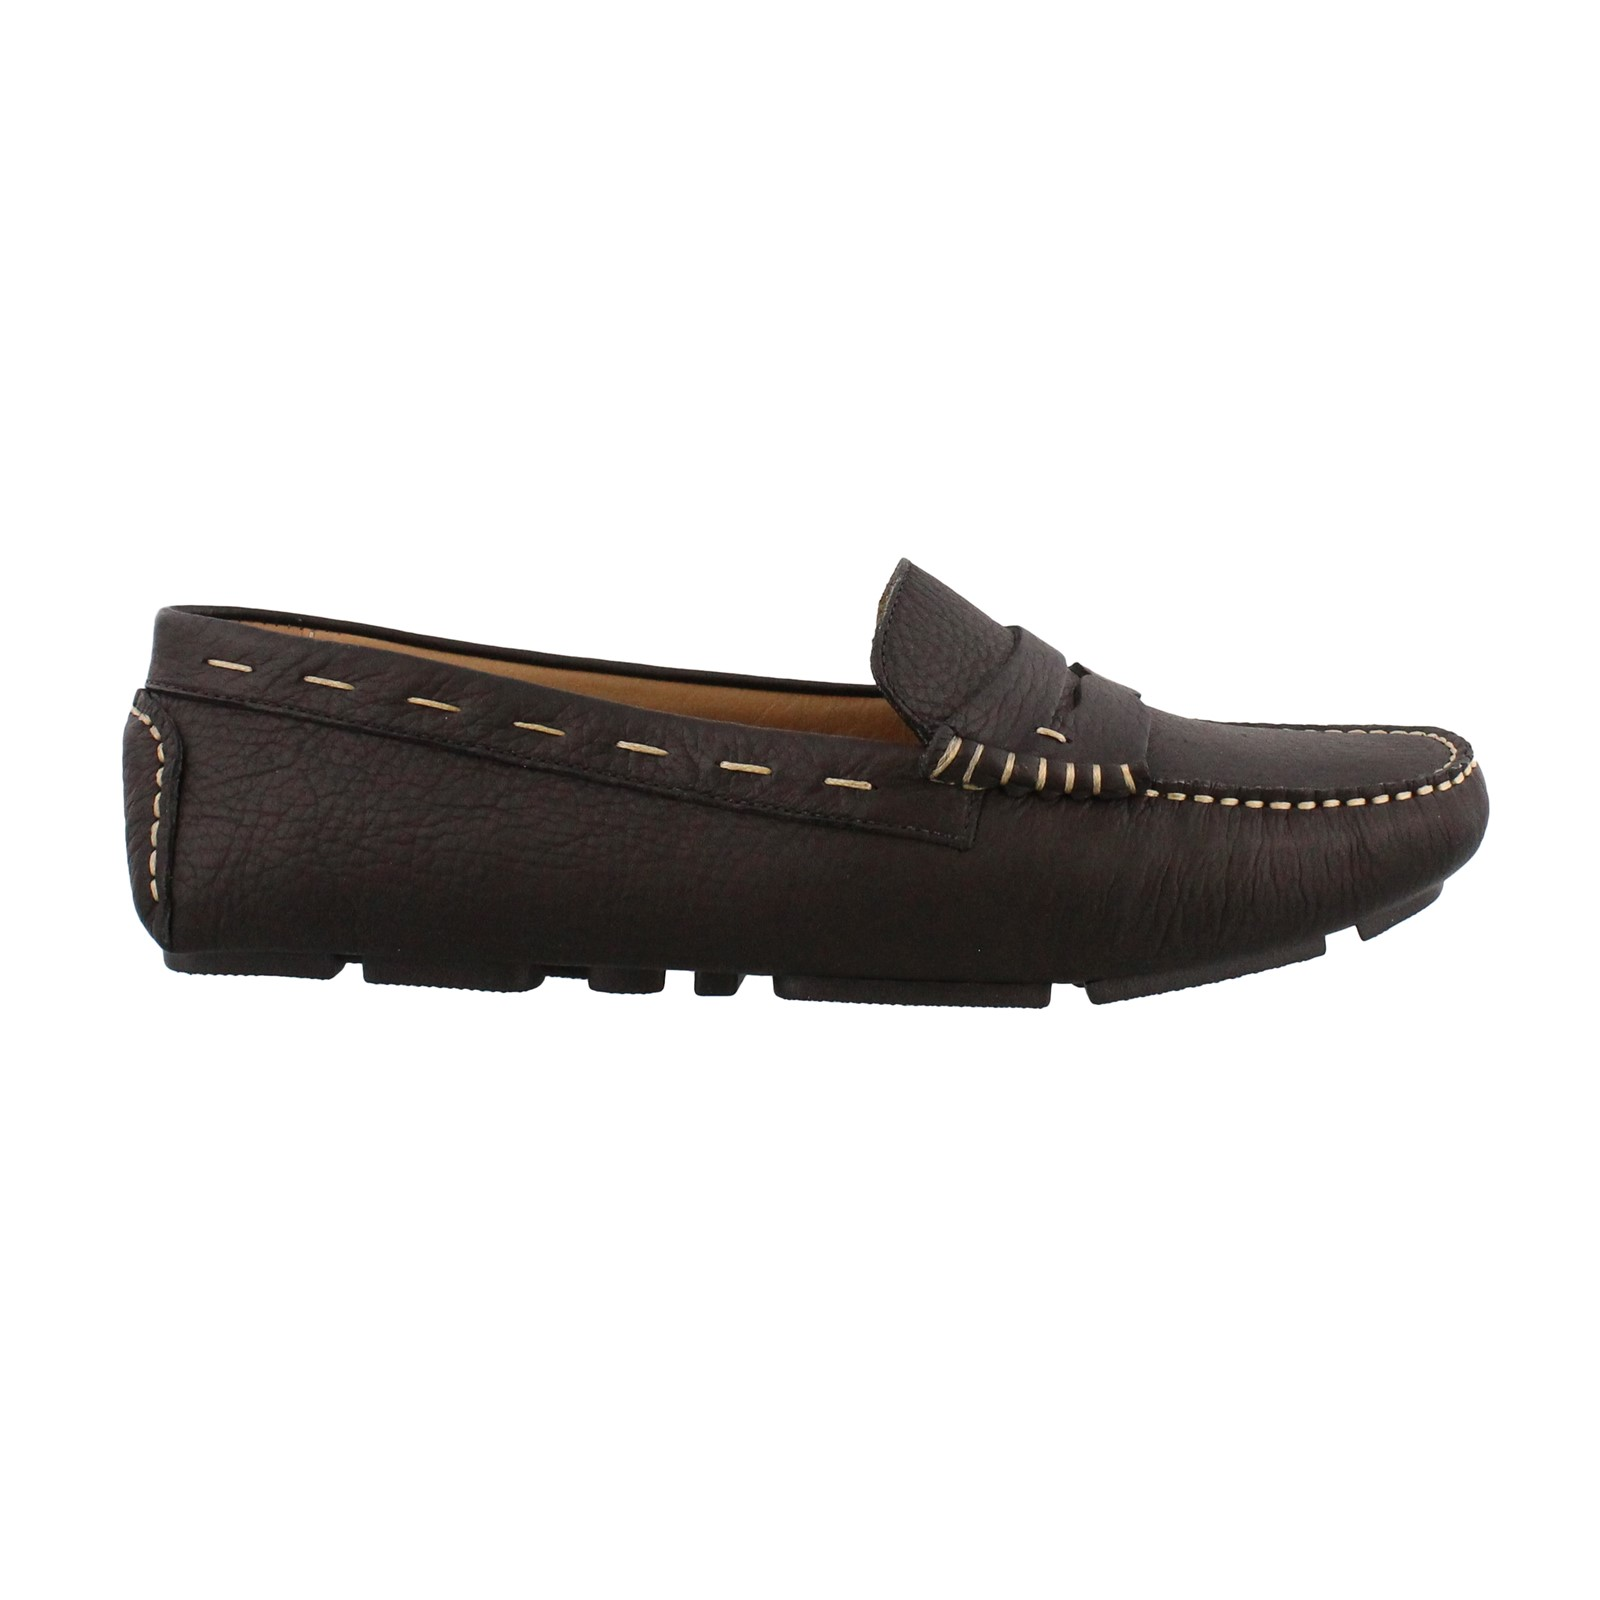 Women's GH Bass and Co, Patricia Slip on Drivers